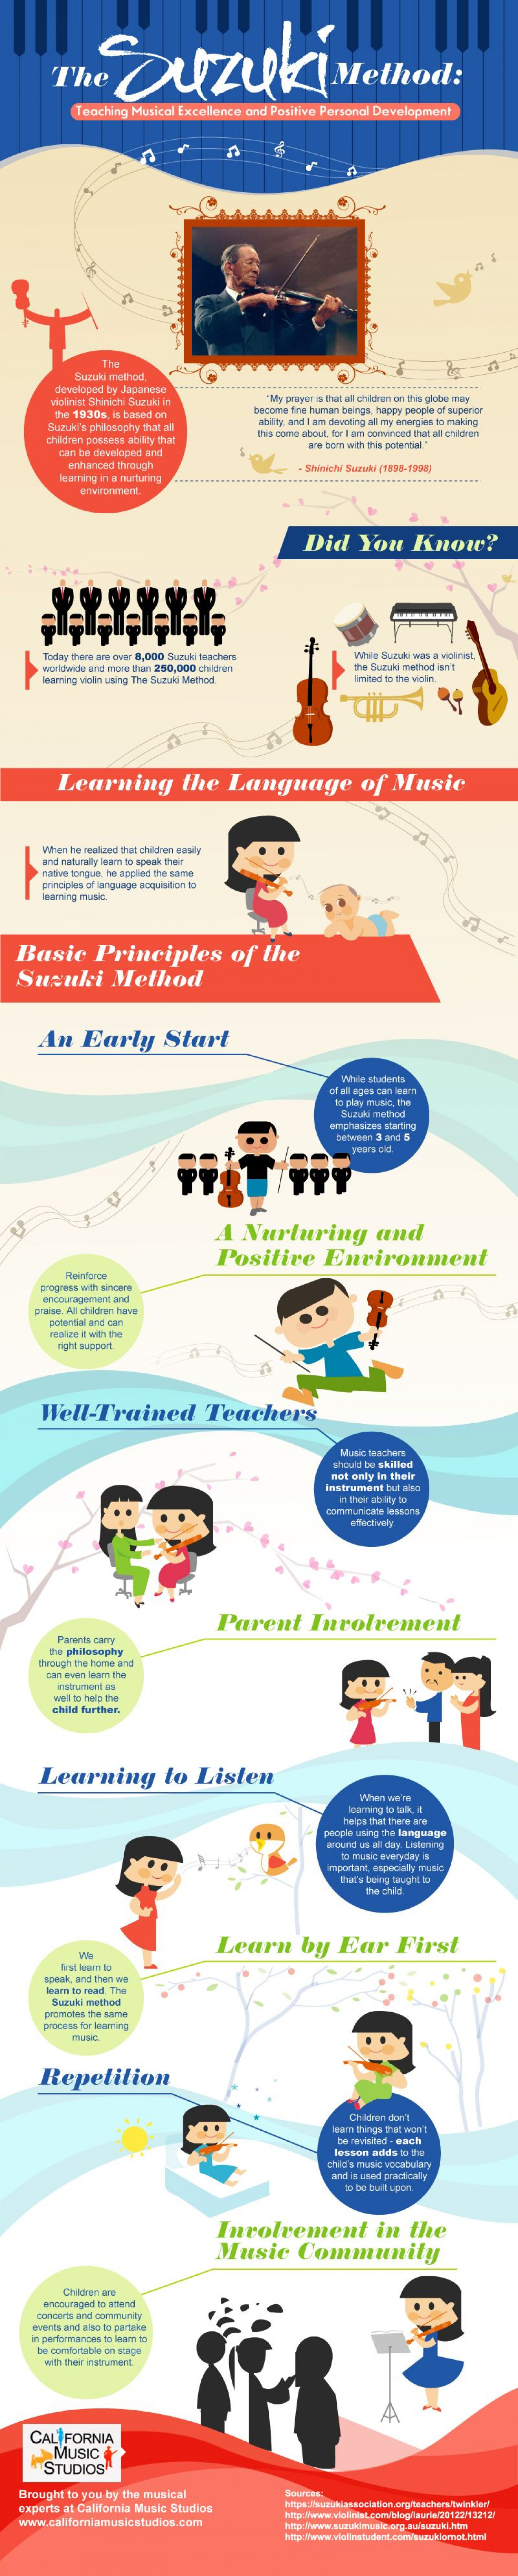 The Suzuki Method: Teaching Musical Excellence and Positive Personal Development Infographic